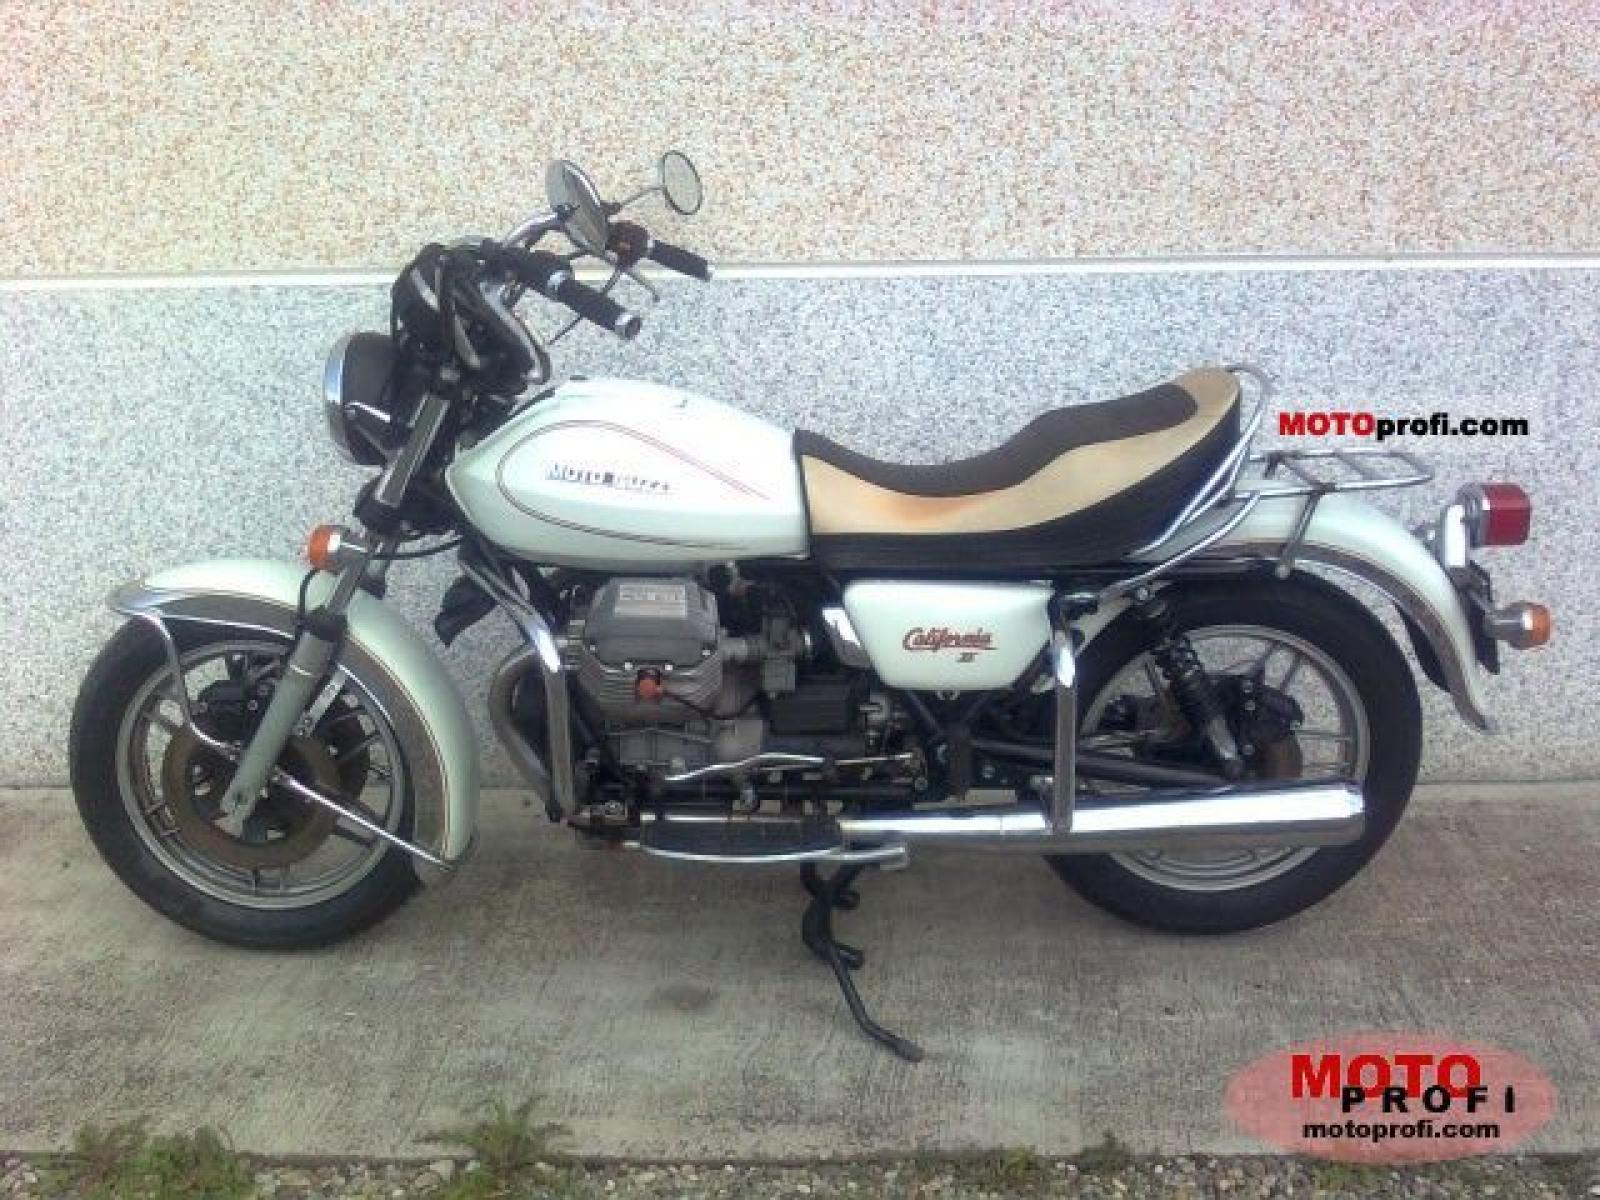 Moto Guzzi California II images #106934